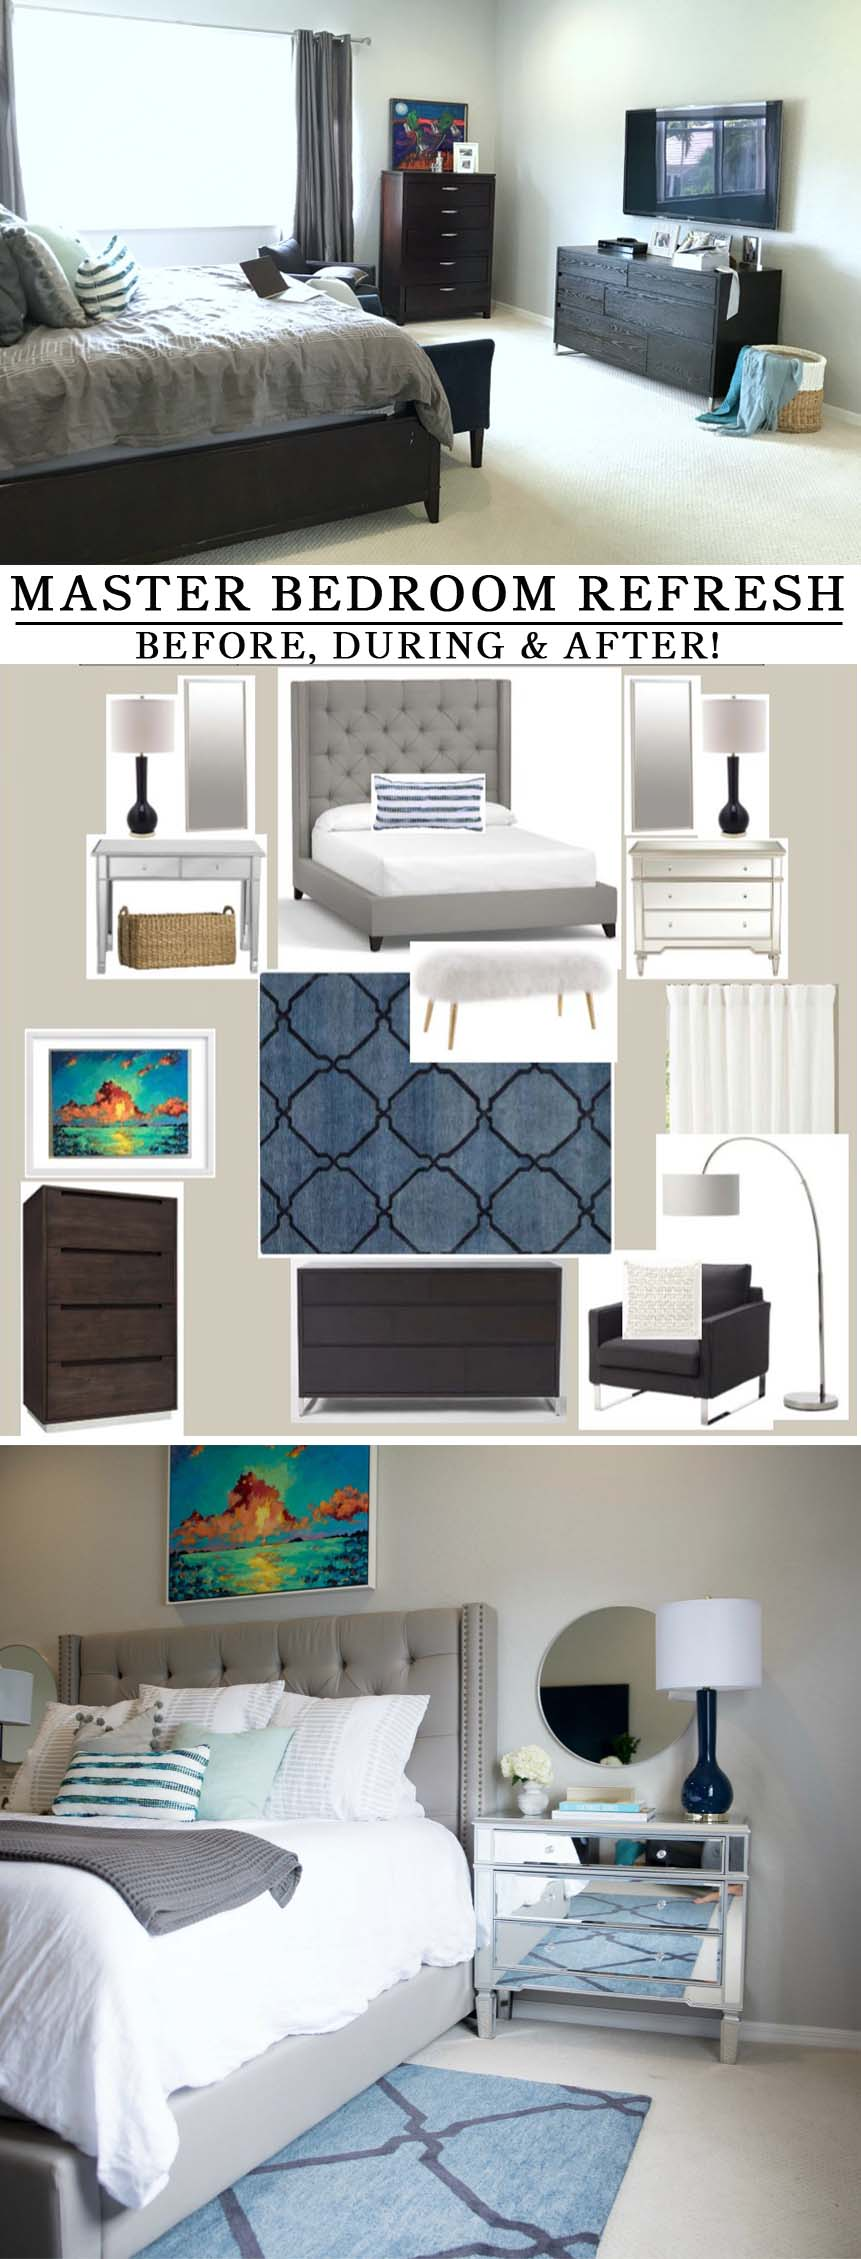 Master Bedroom Before & After -- Coastal, contemporary inspired space - Master bedroom refresh -- bright and light master bedroom decor (before & after) with grey upholstered headboard by popular Florida style blogger The Modern Savvy